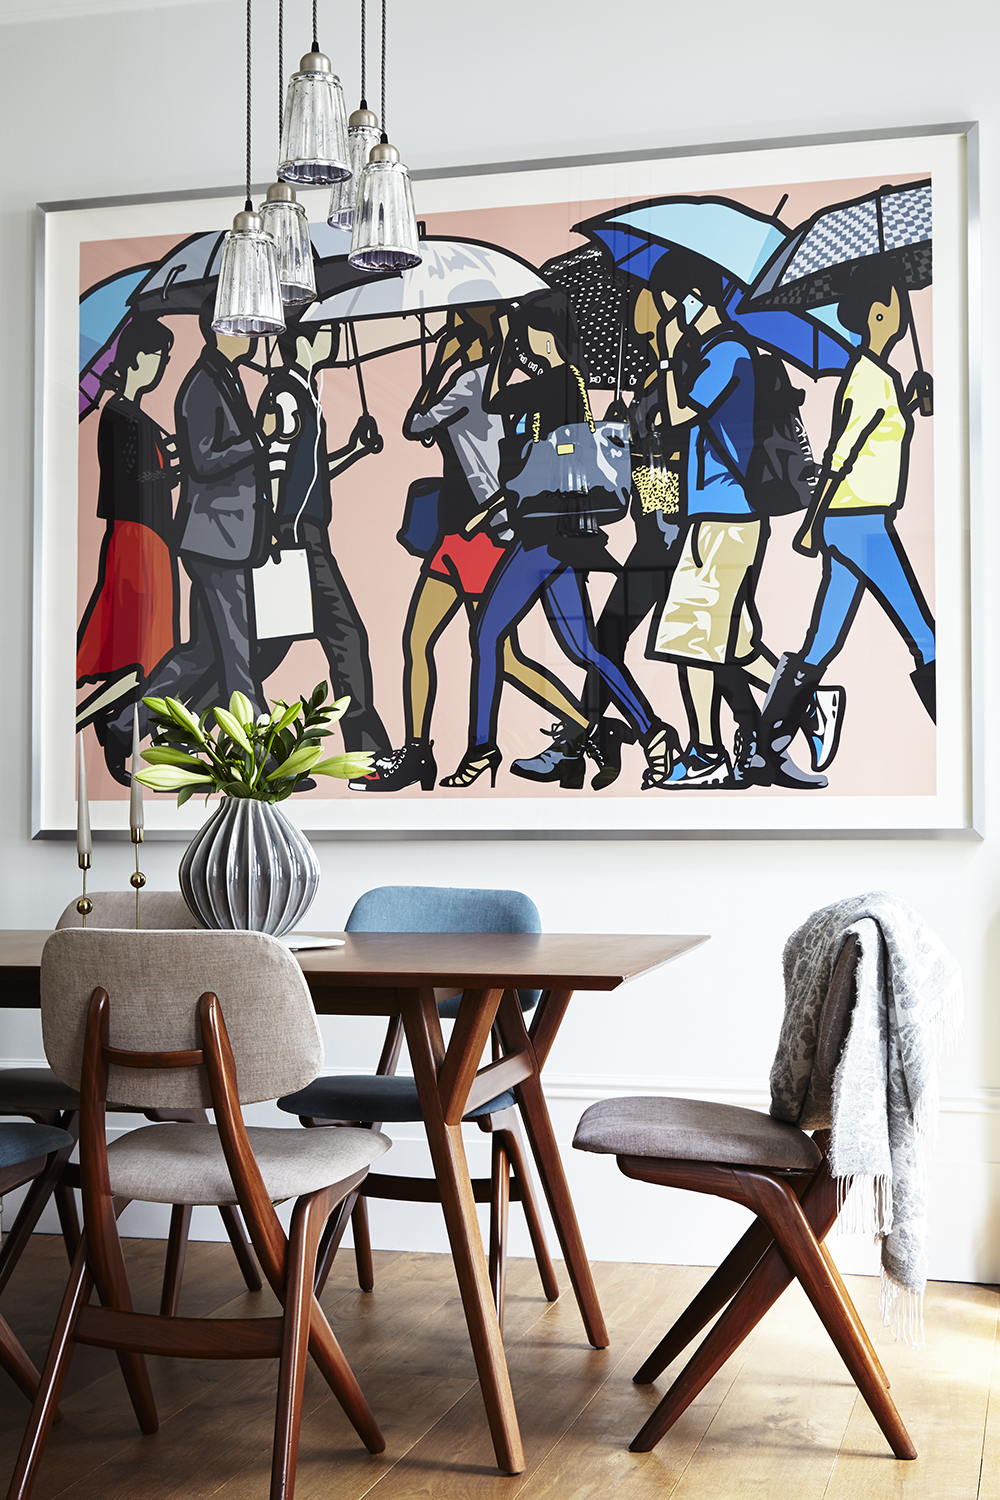 Interior Design Styling Residential Wallart Dining Table Chairs Vintage